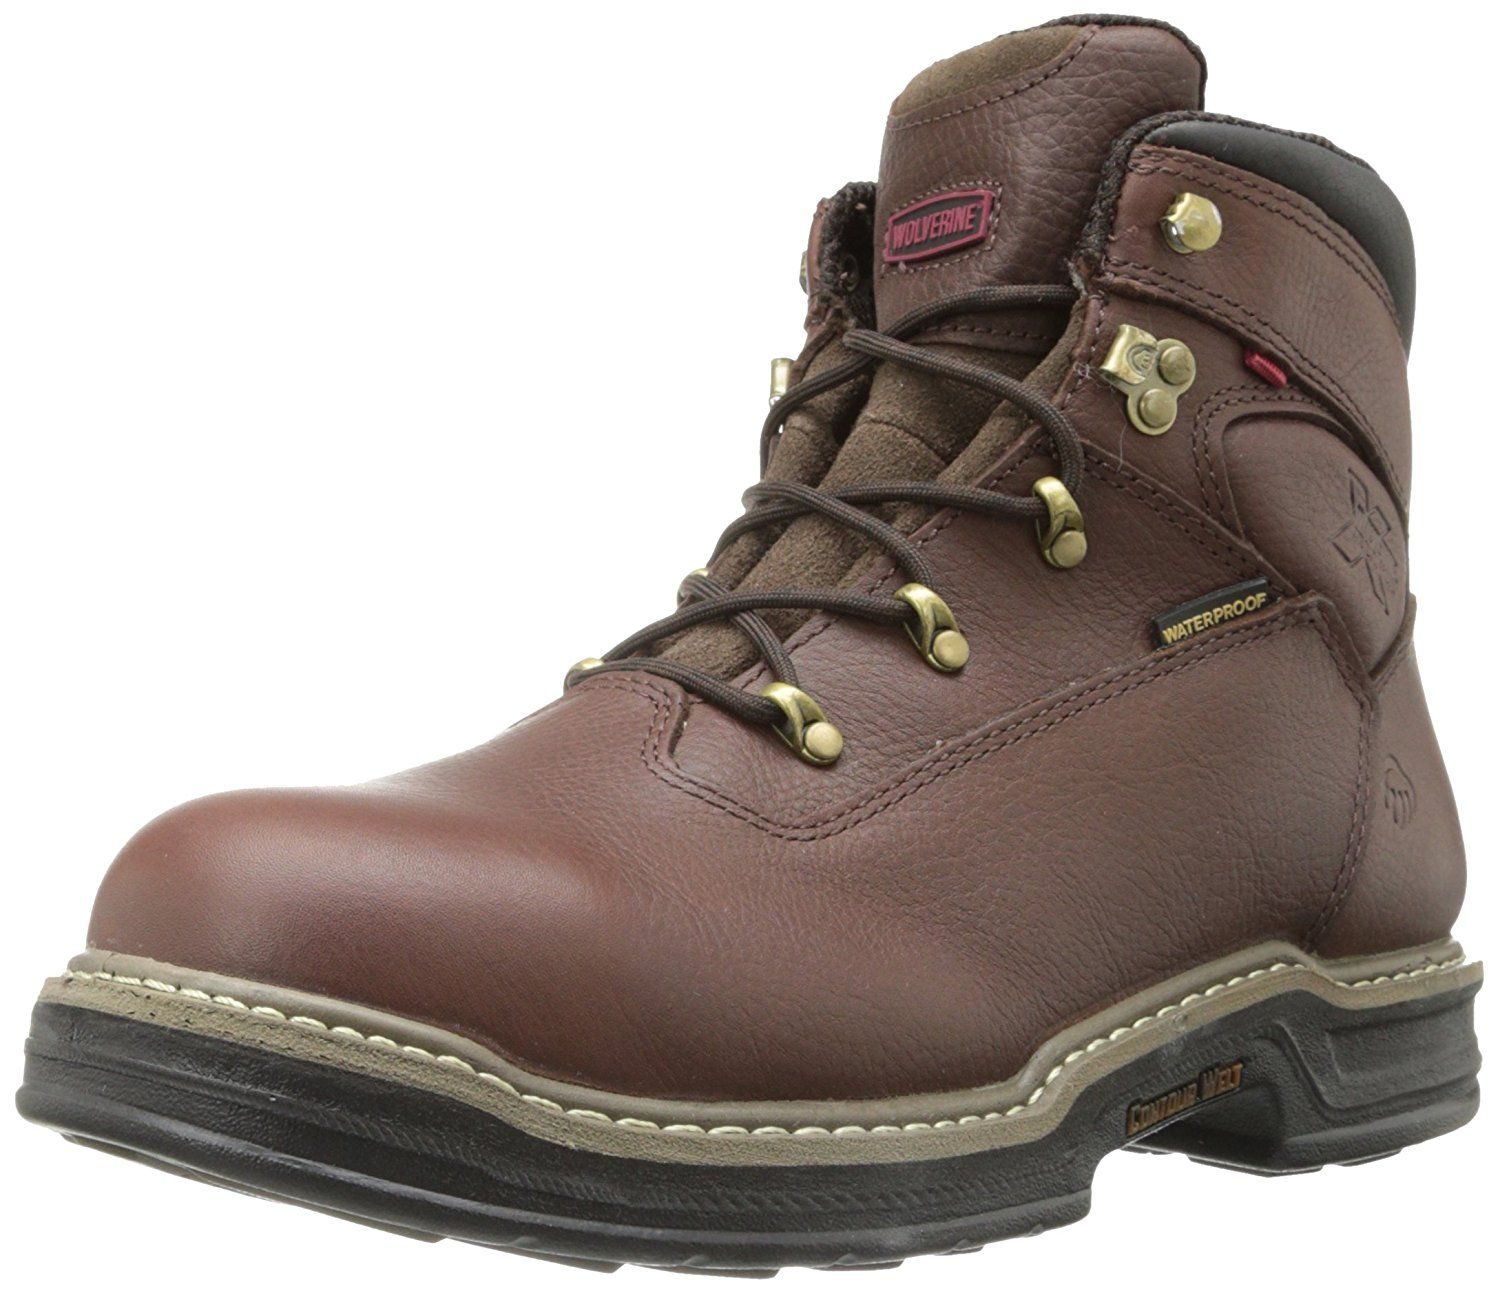 39e949d6b80 Wolverine Men's W04820 Buccaneer Work Boot ** Find out more details ...